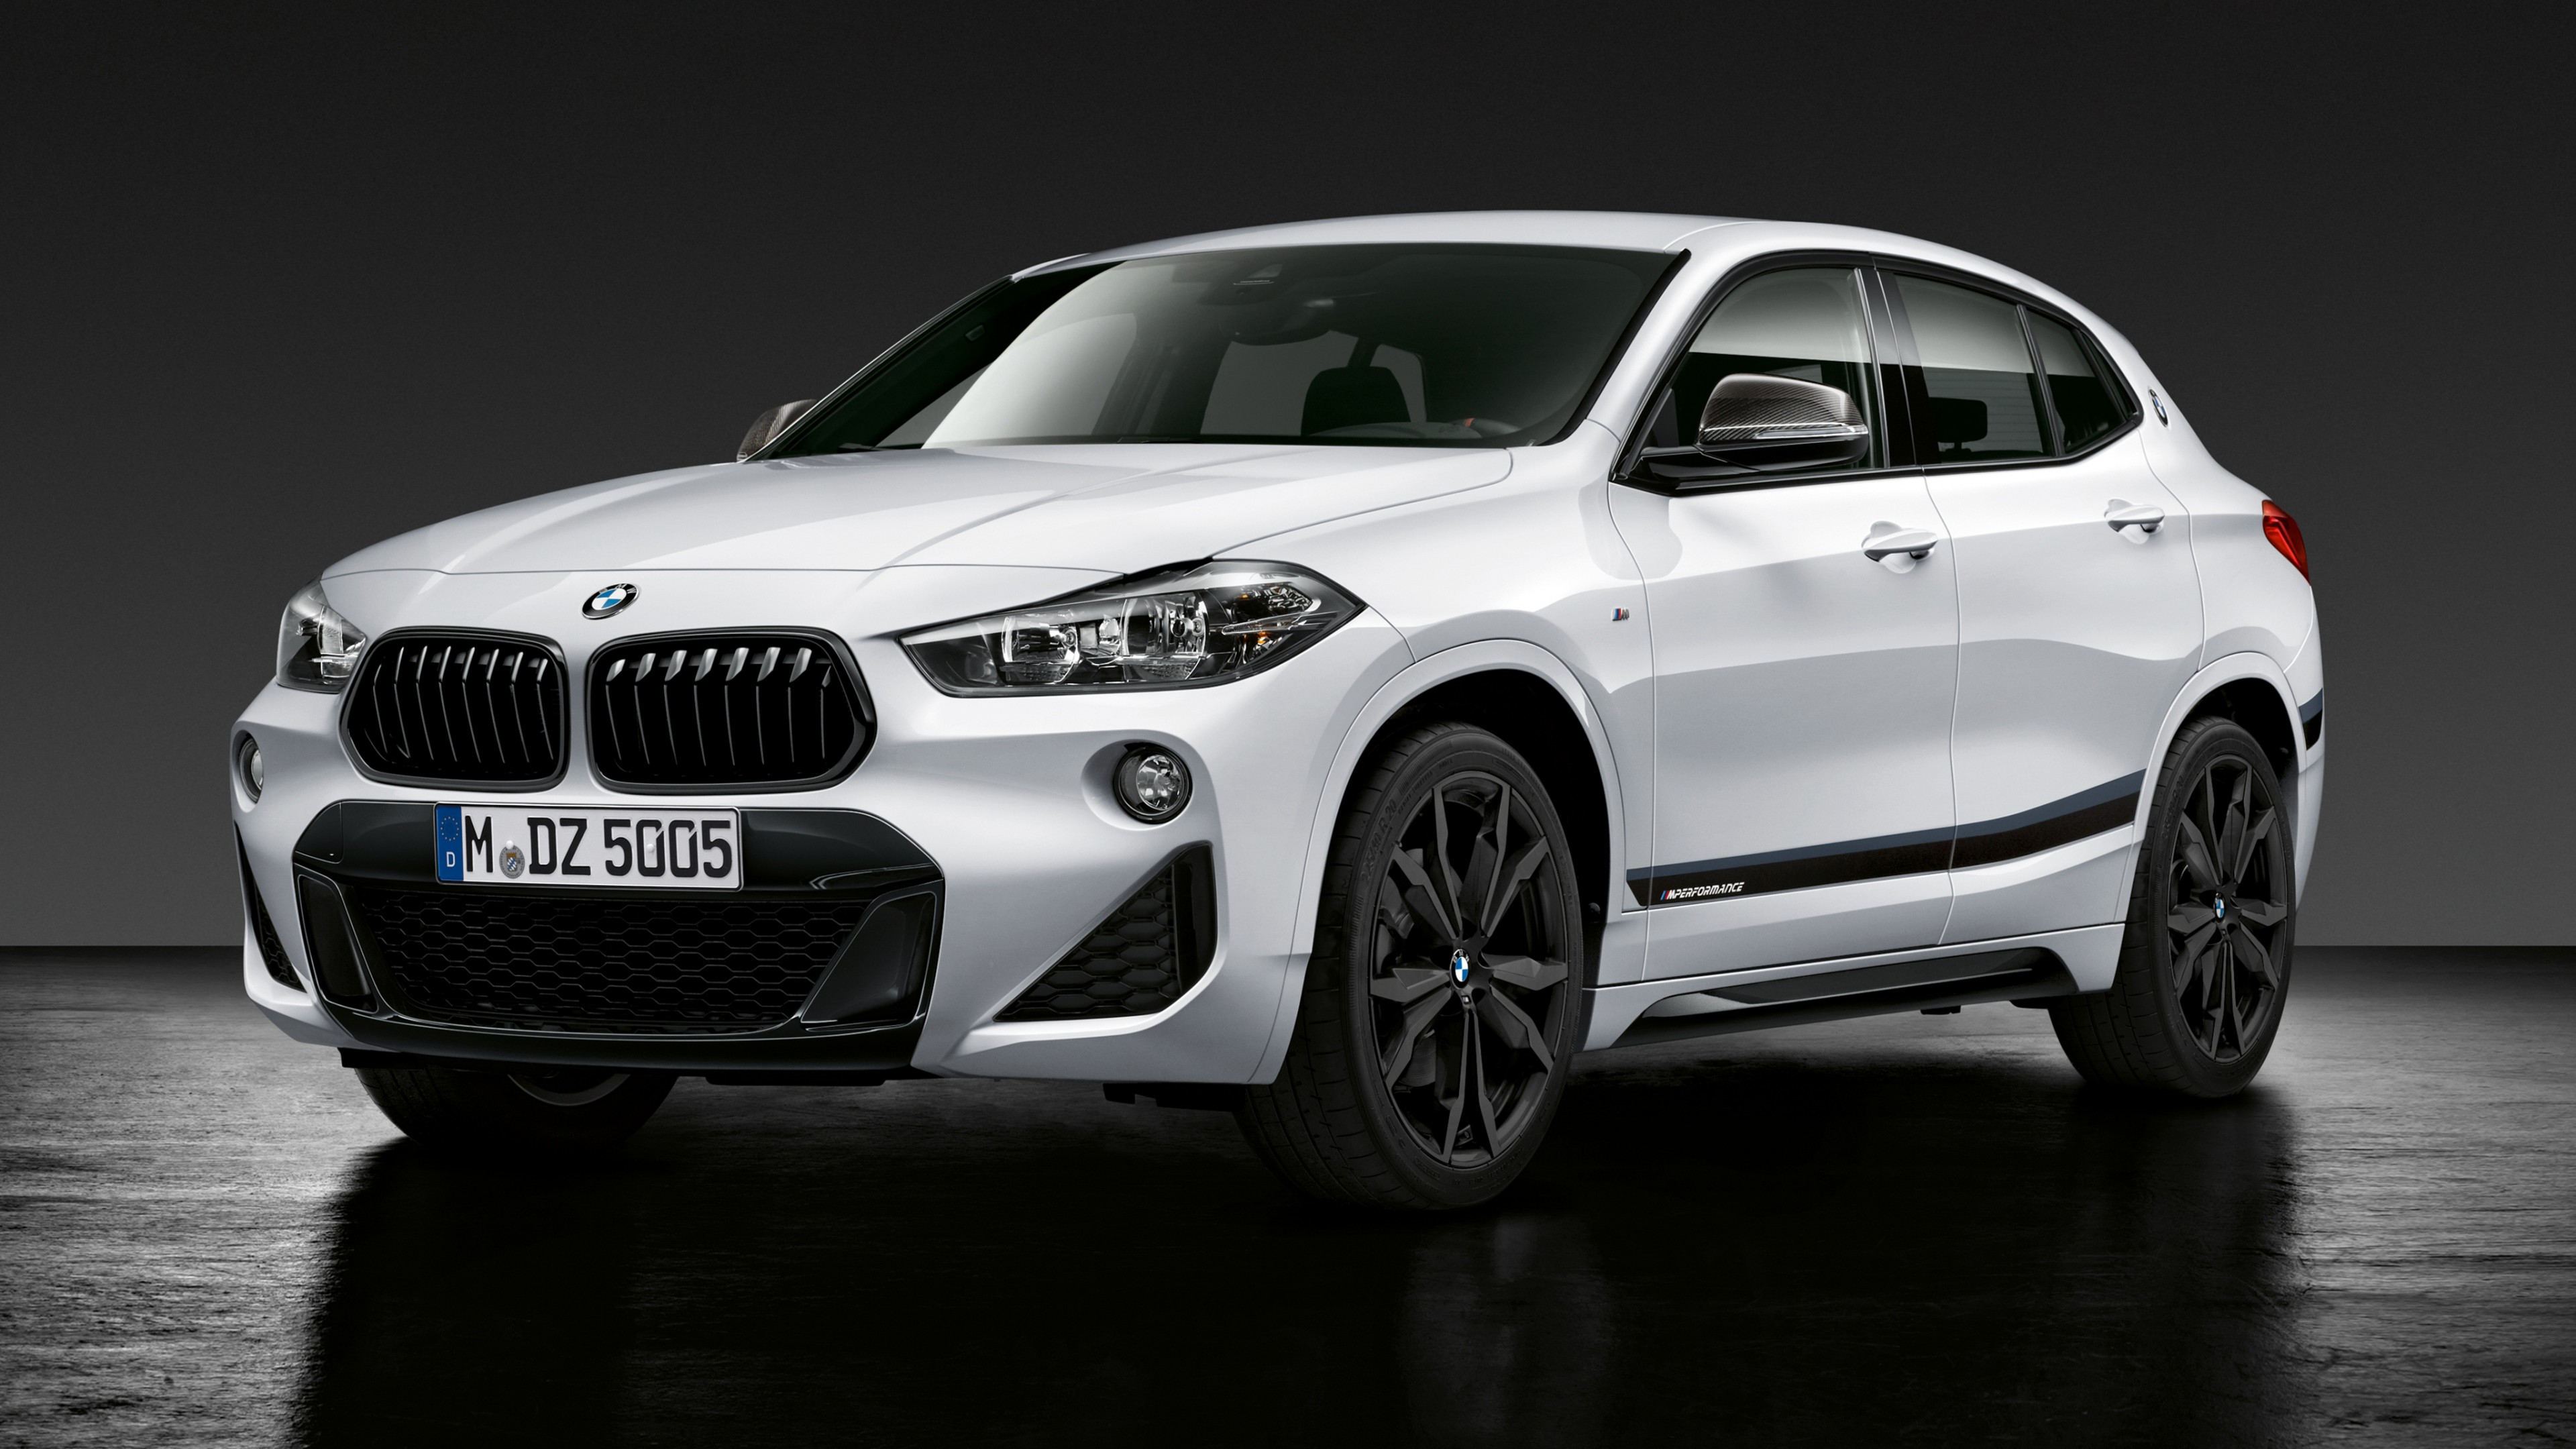 2018 Bmw X2 M Performance Parts 4k Wallpaper Hd Car